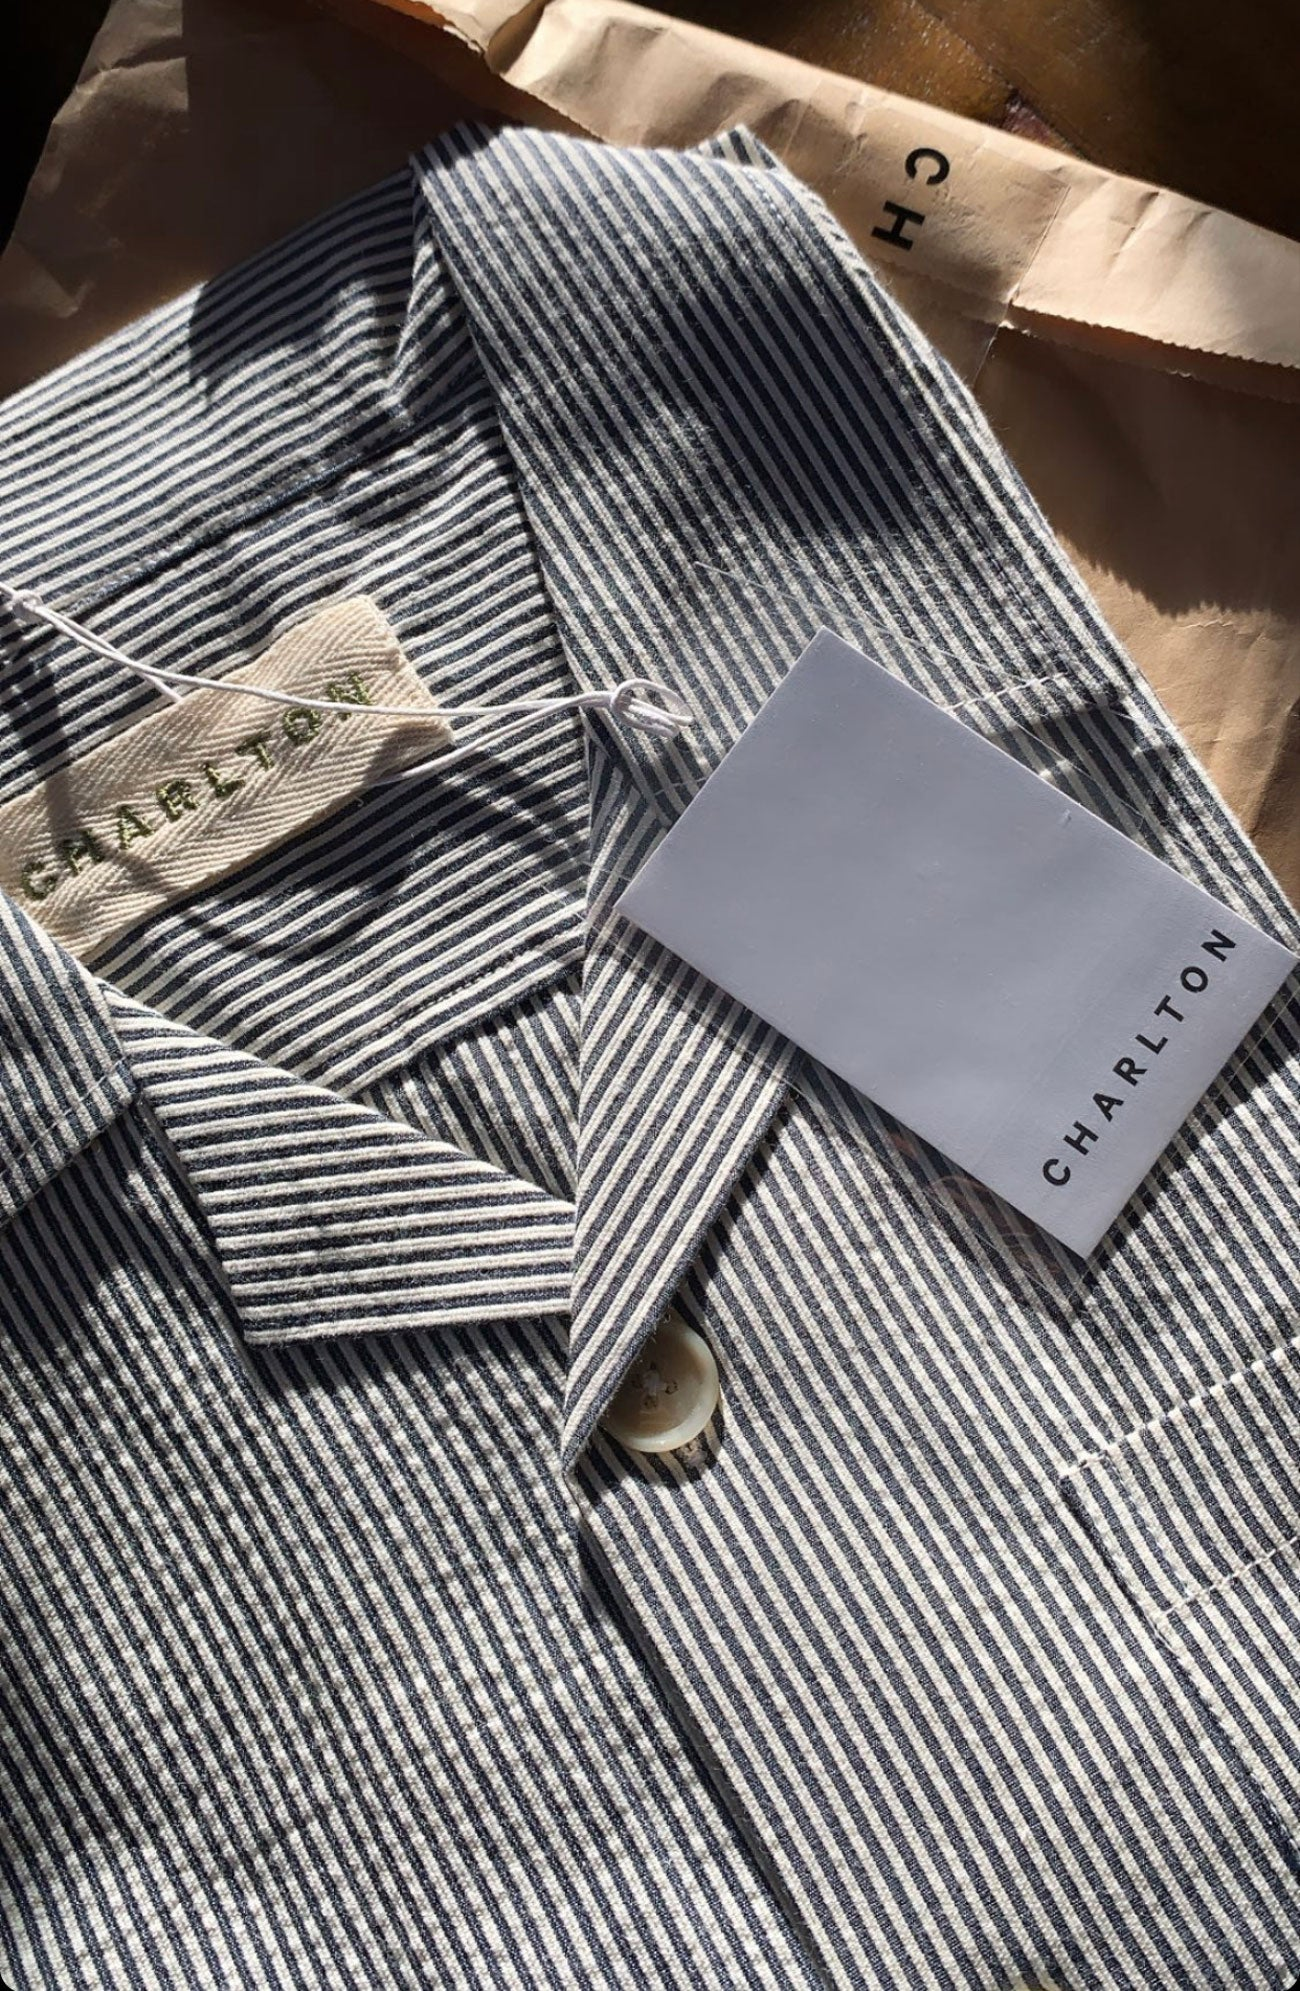 Japanese Blue Stripe Shirt.